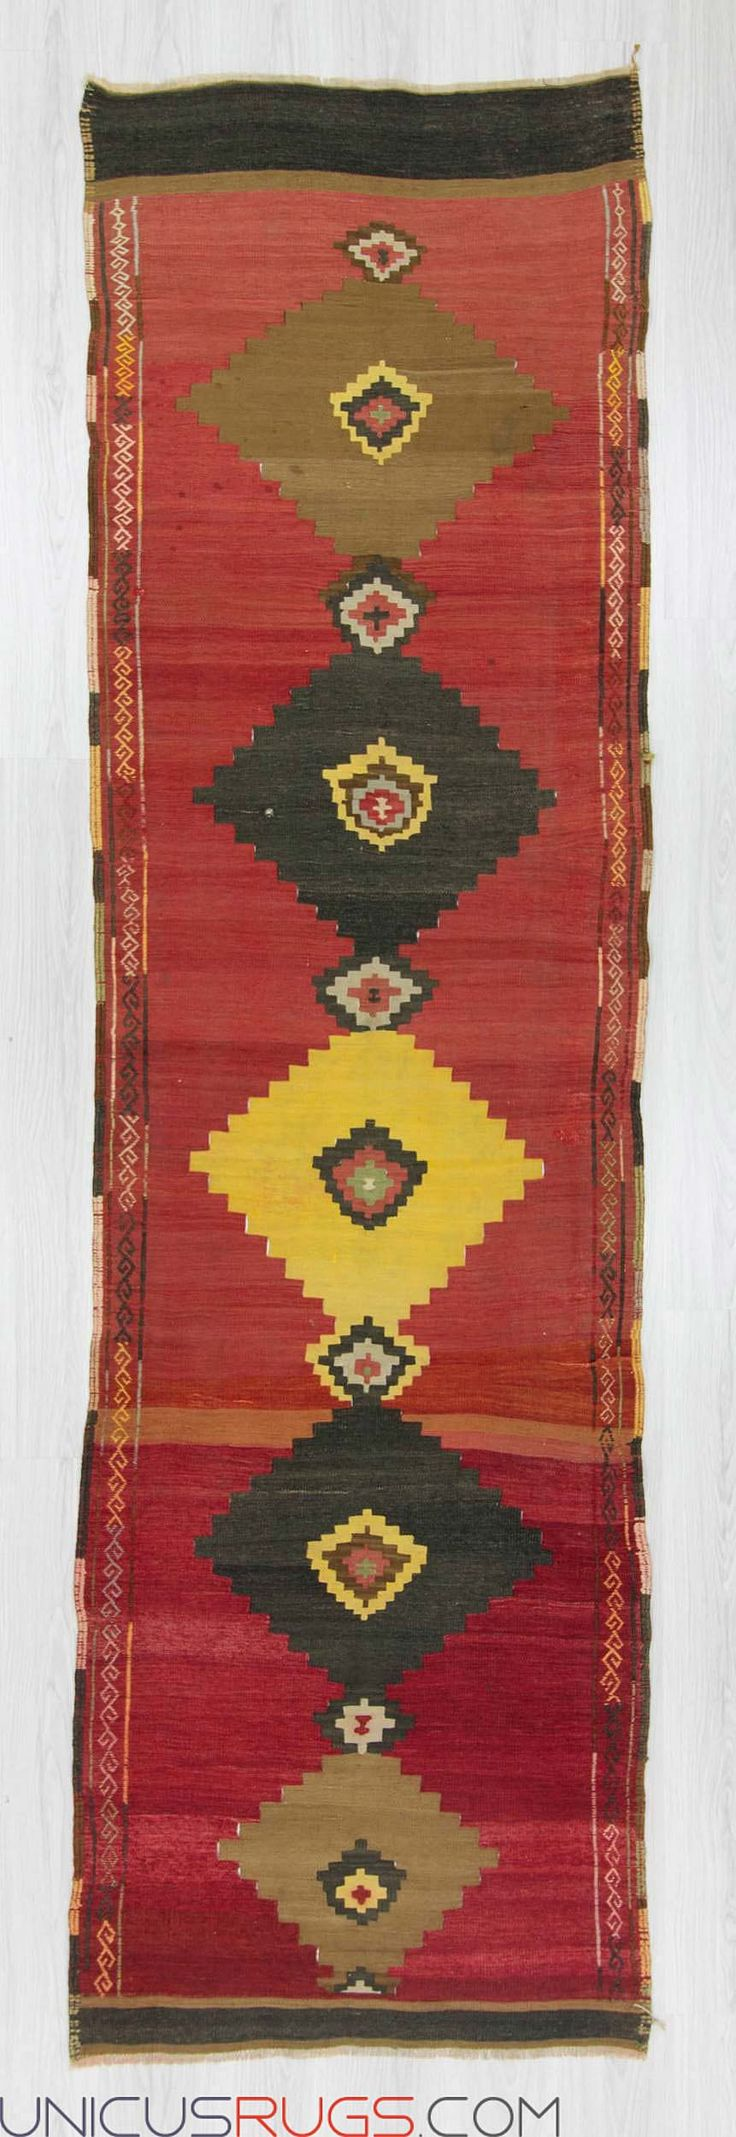 "Handwoven vintage kilim runner from Malatya region of Turkey. In very good condition. Approximately 50-60 years old. Width: 3' 1"" - Length: 11' 1"" RUNNERS"